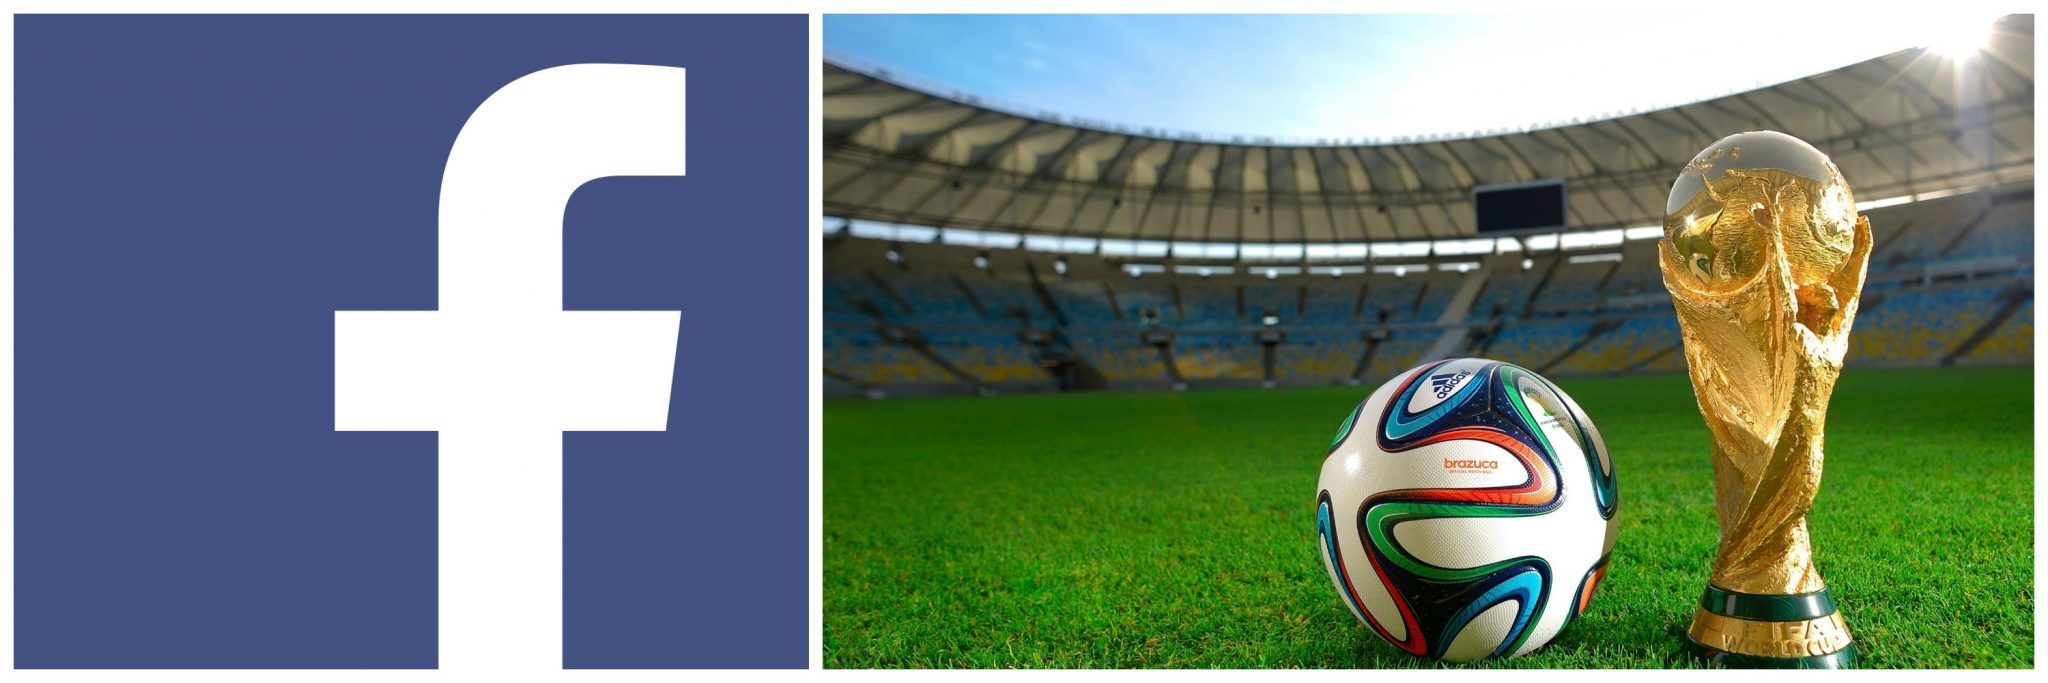 World Cup 2014: When Facebook hit the one billion mark